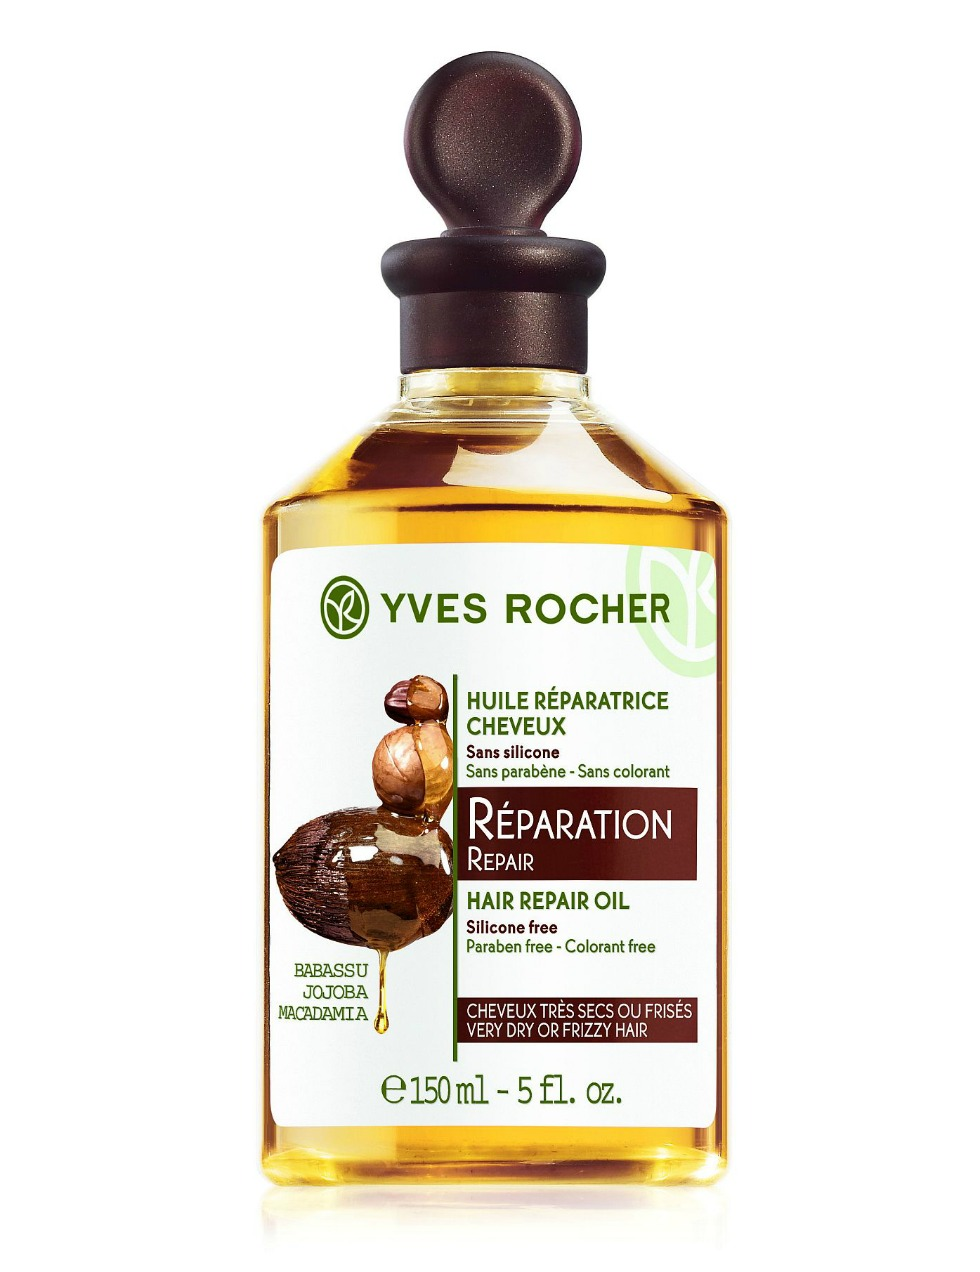 Yves Rocher Hair Repair Oil